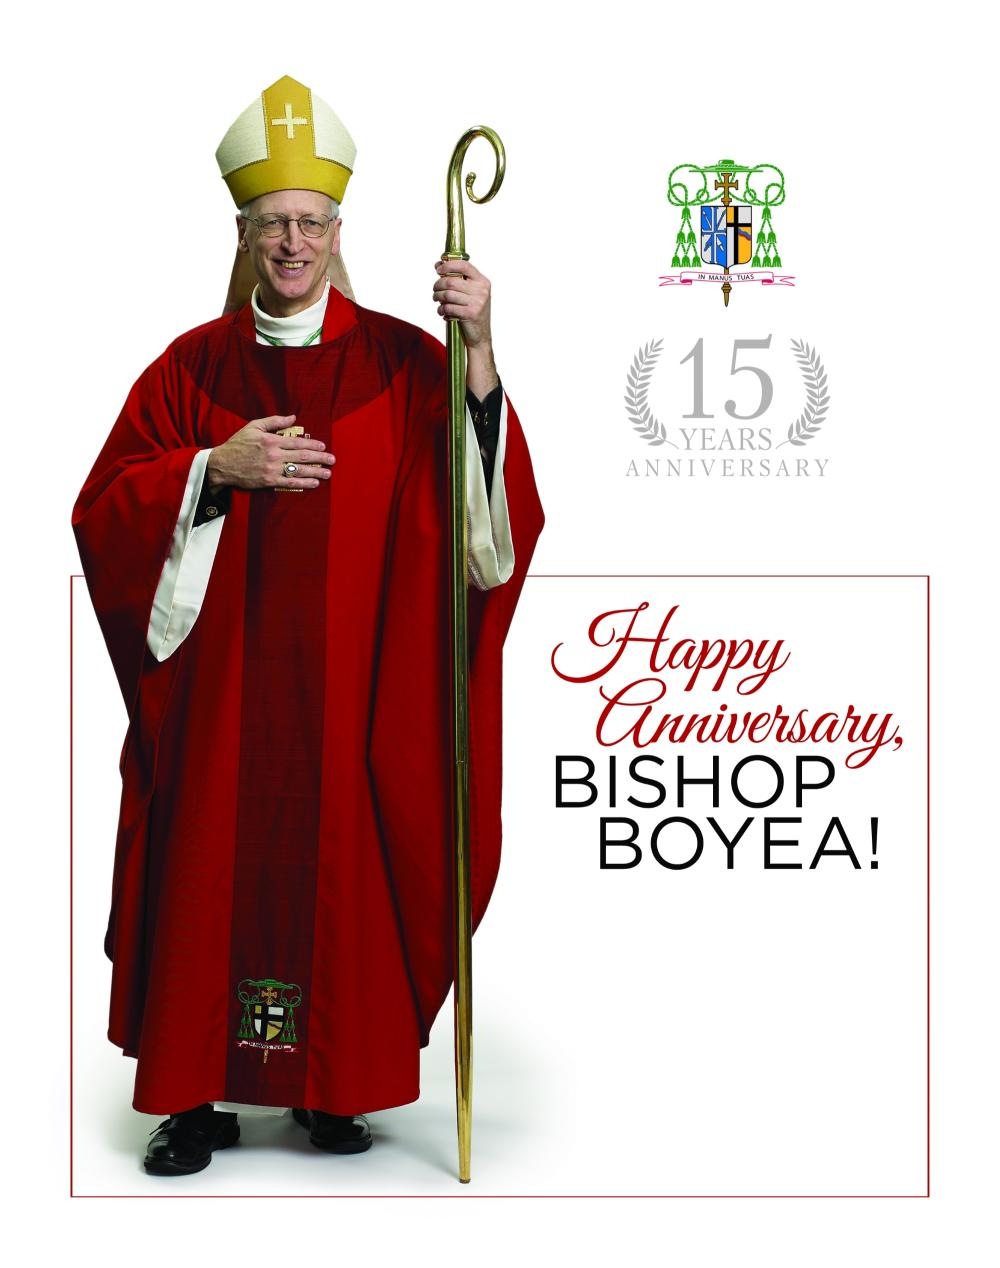 Happy Anniversary Bishop Boyea!